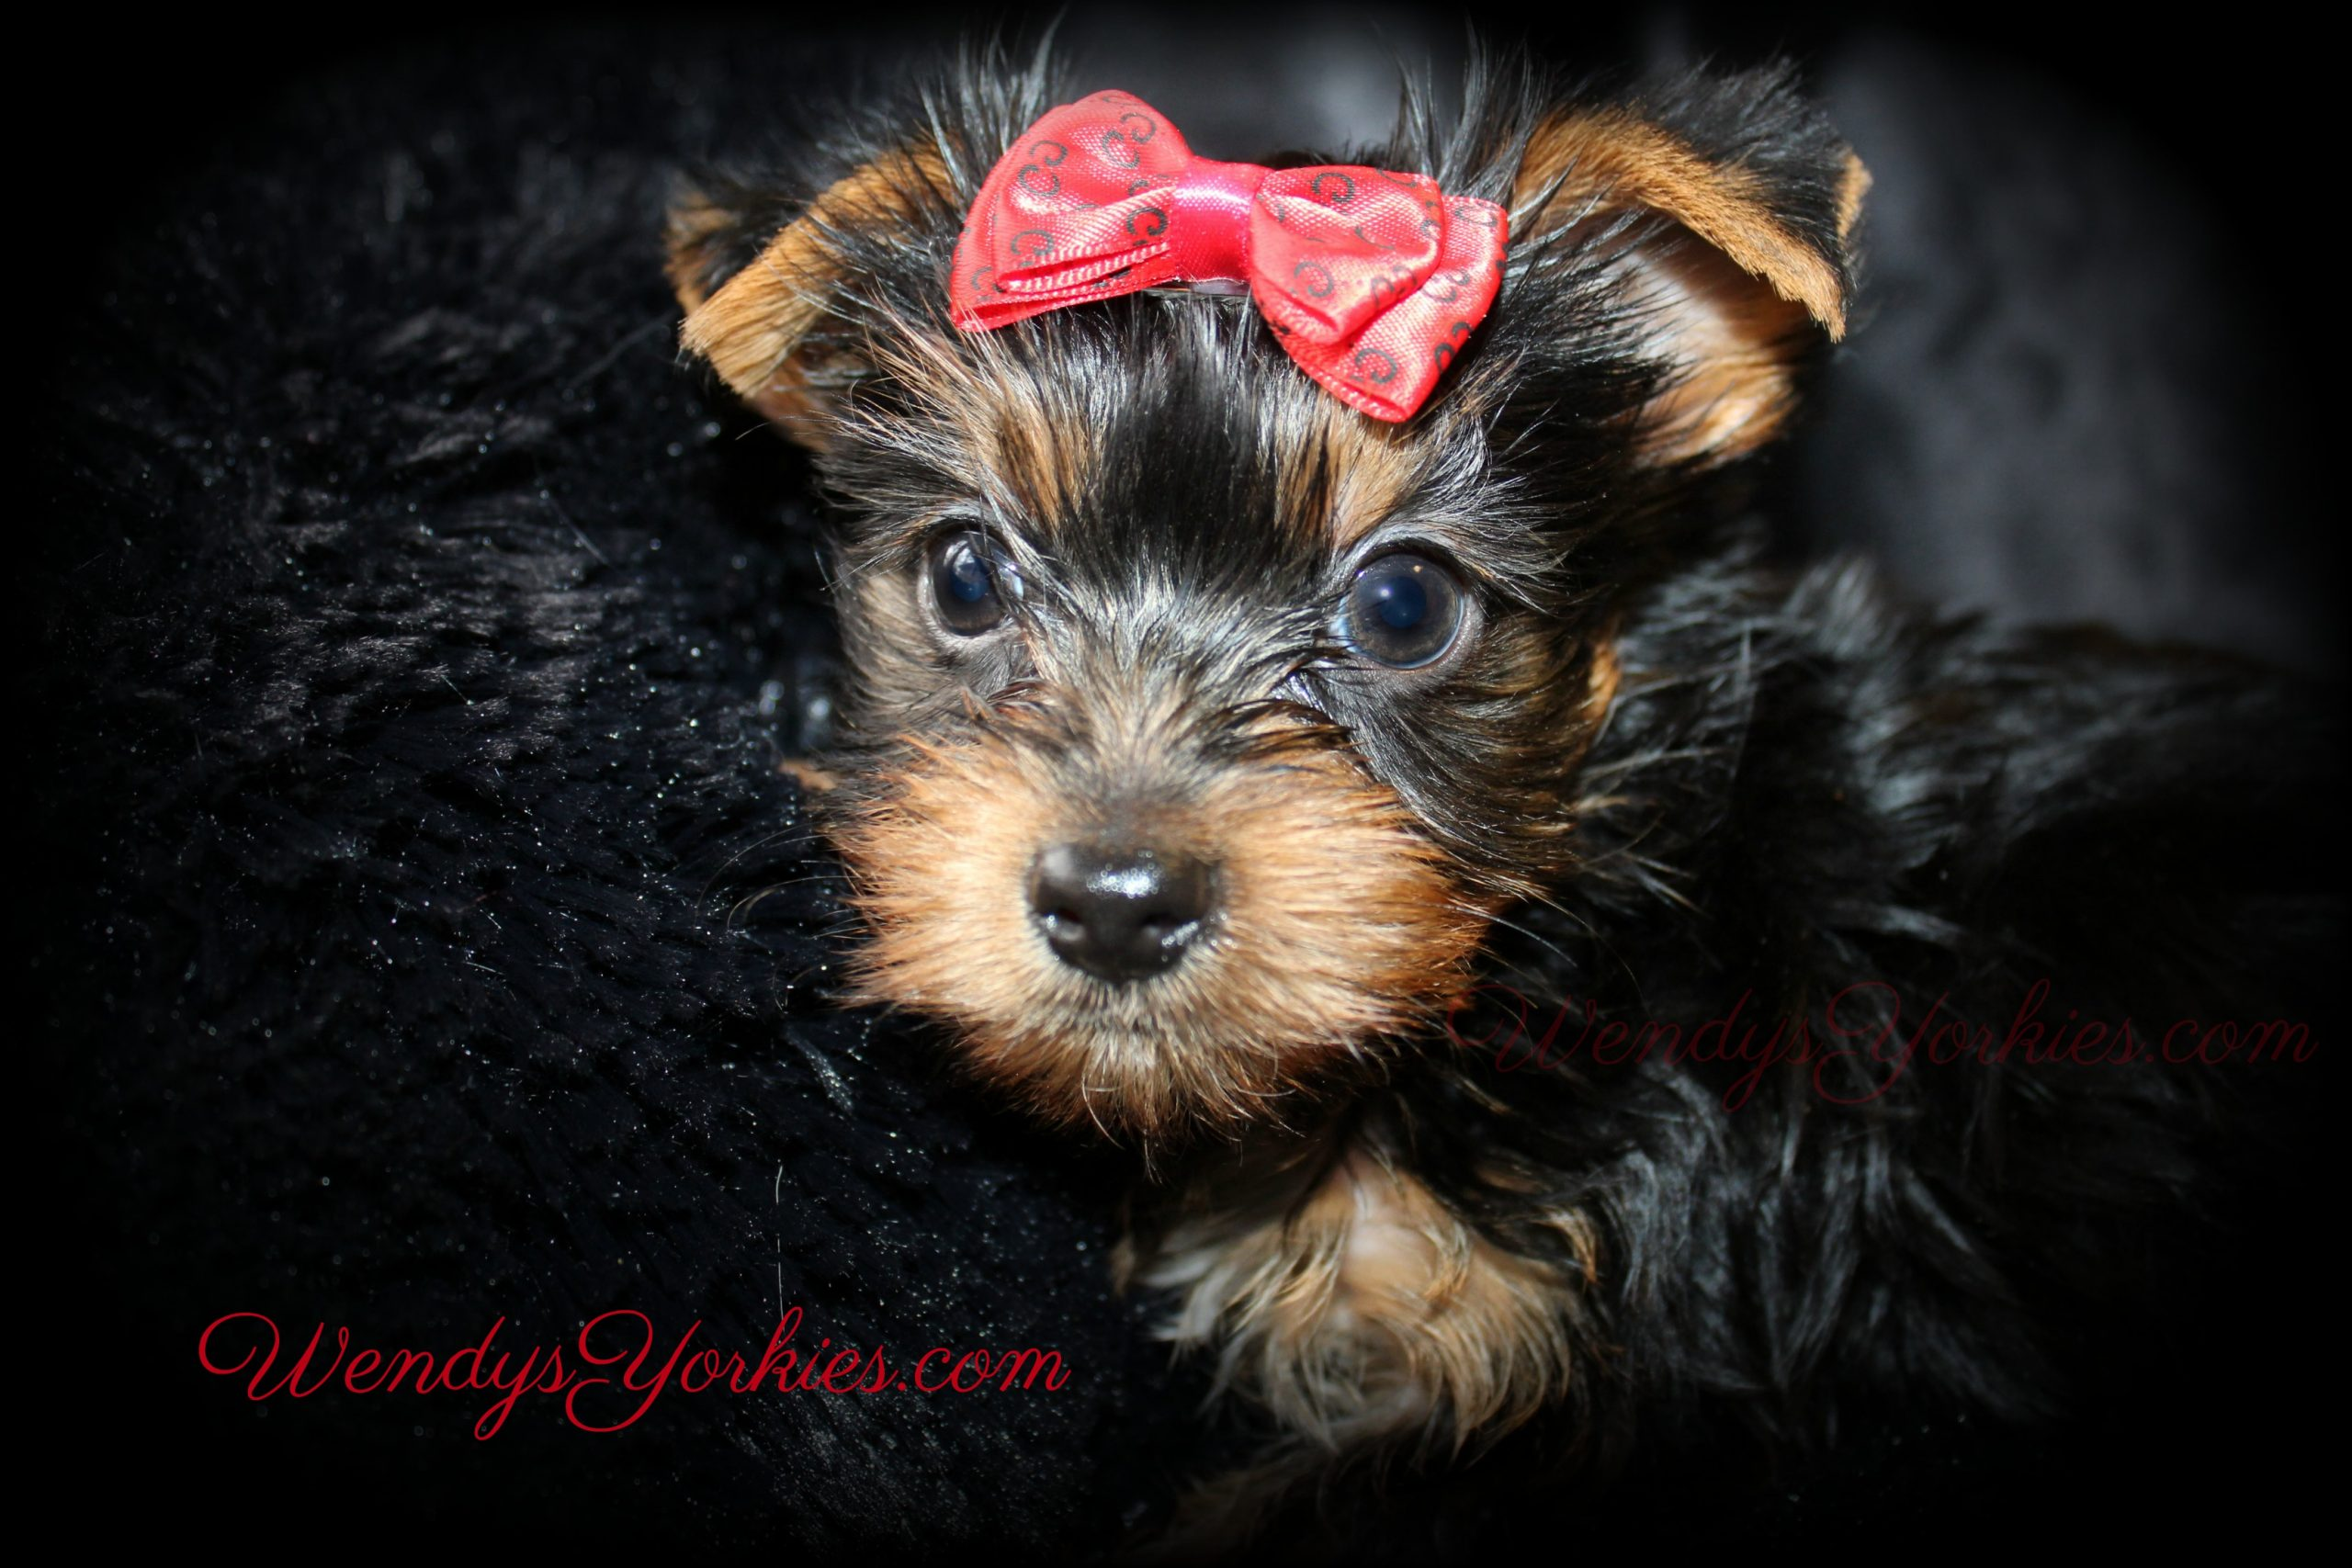 Male Yorkie puppy for sale in Texas, Anna m1, WendysYorkies.com